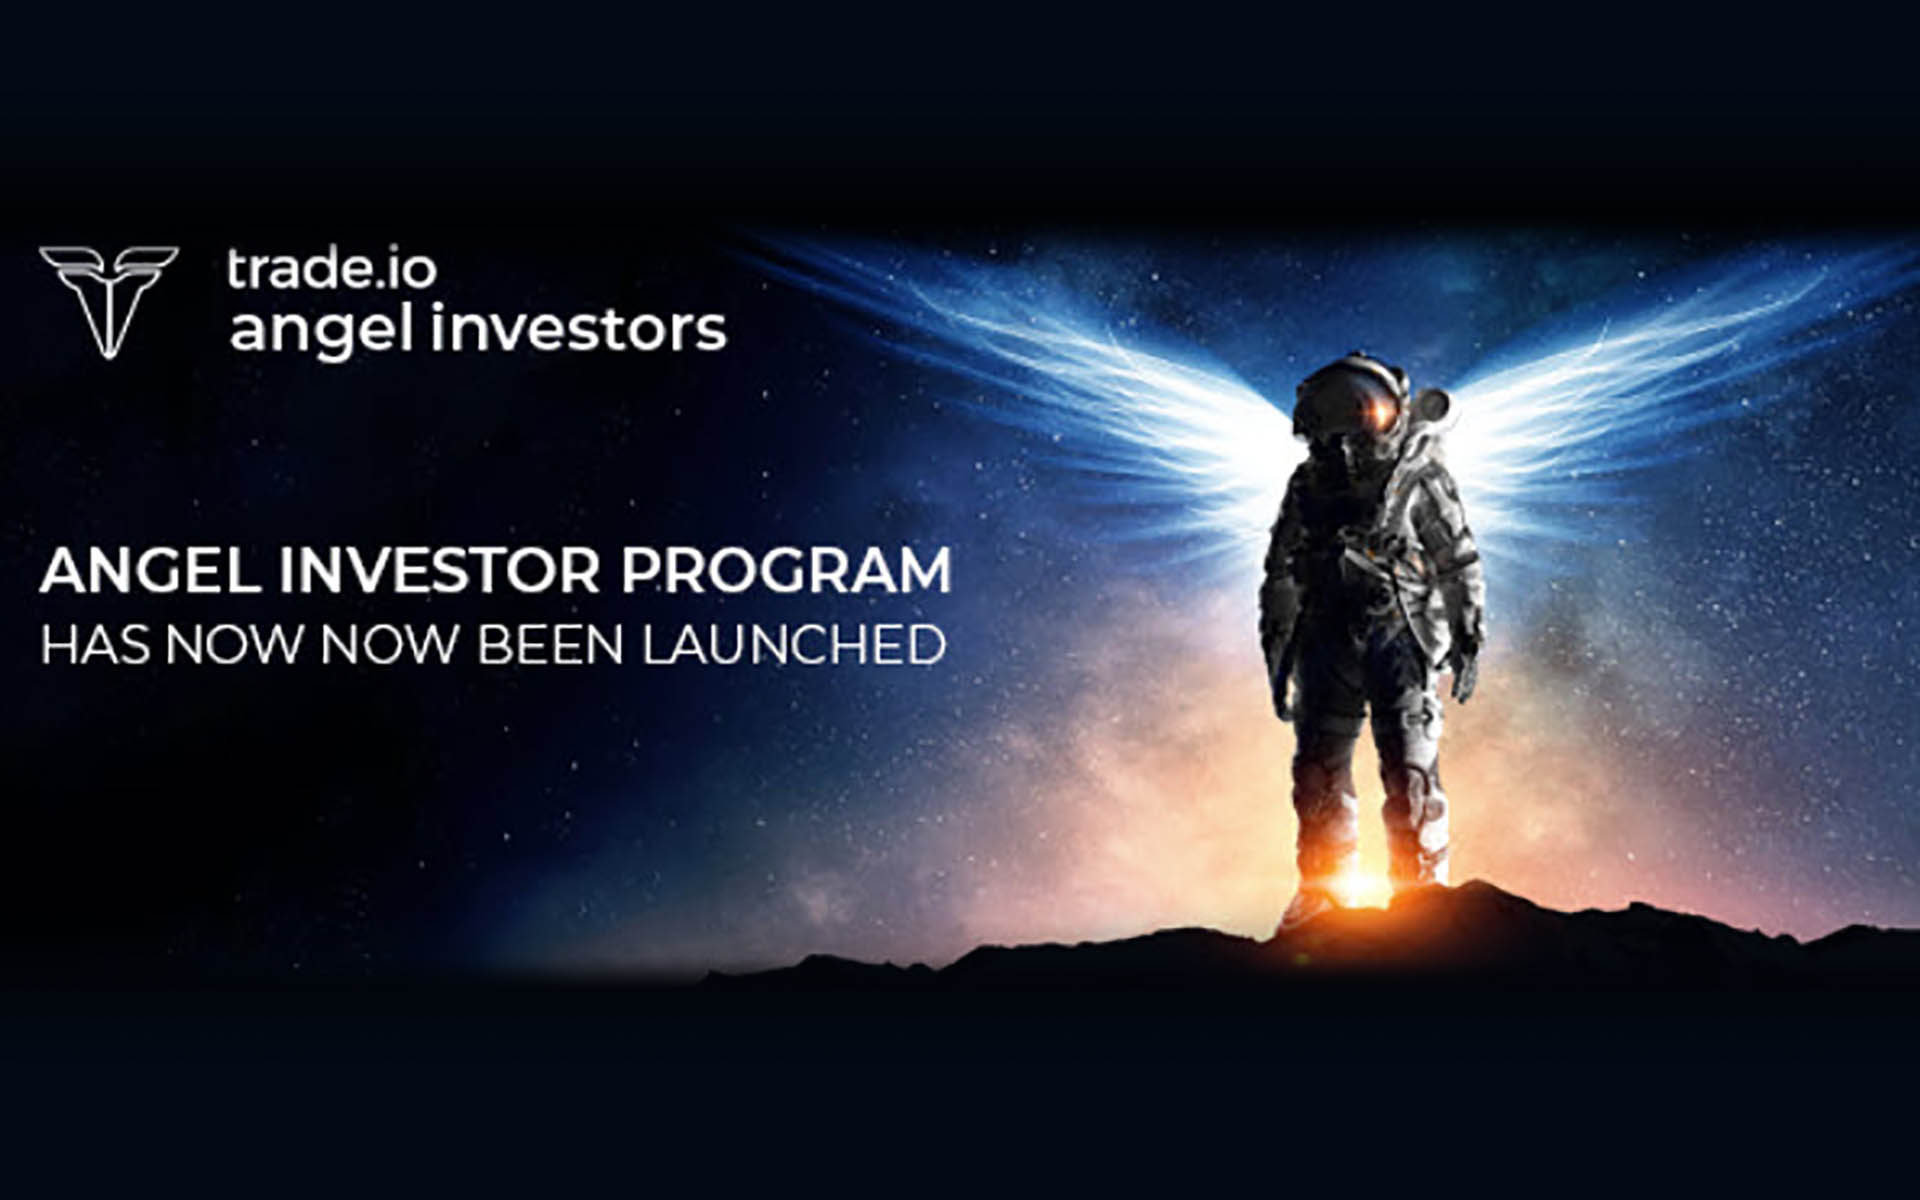 trade.io Launches Angel Investor Program & Has Over 300 Million USD For Potential Investment In trade.io Sponsored ICO Projects